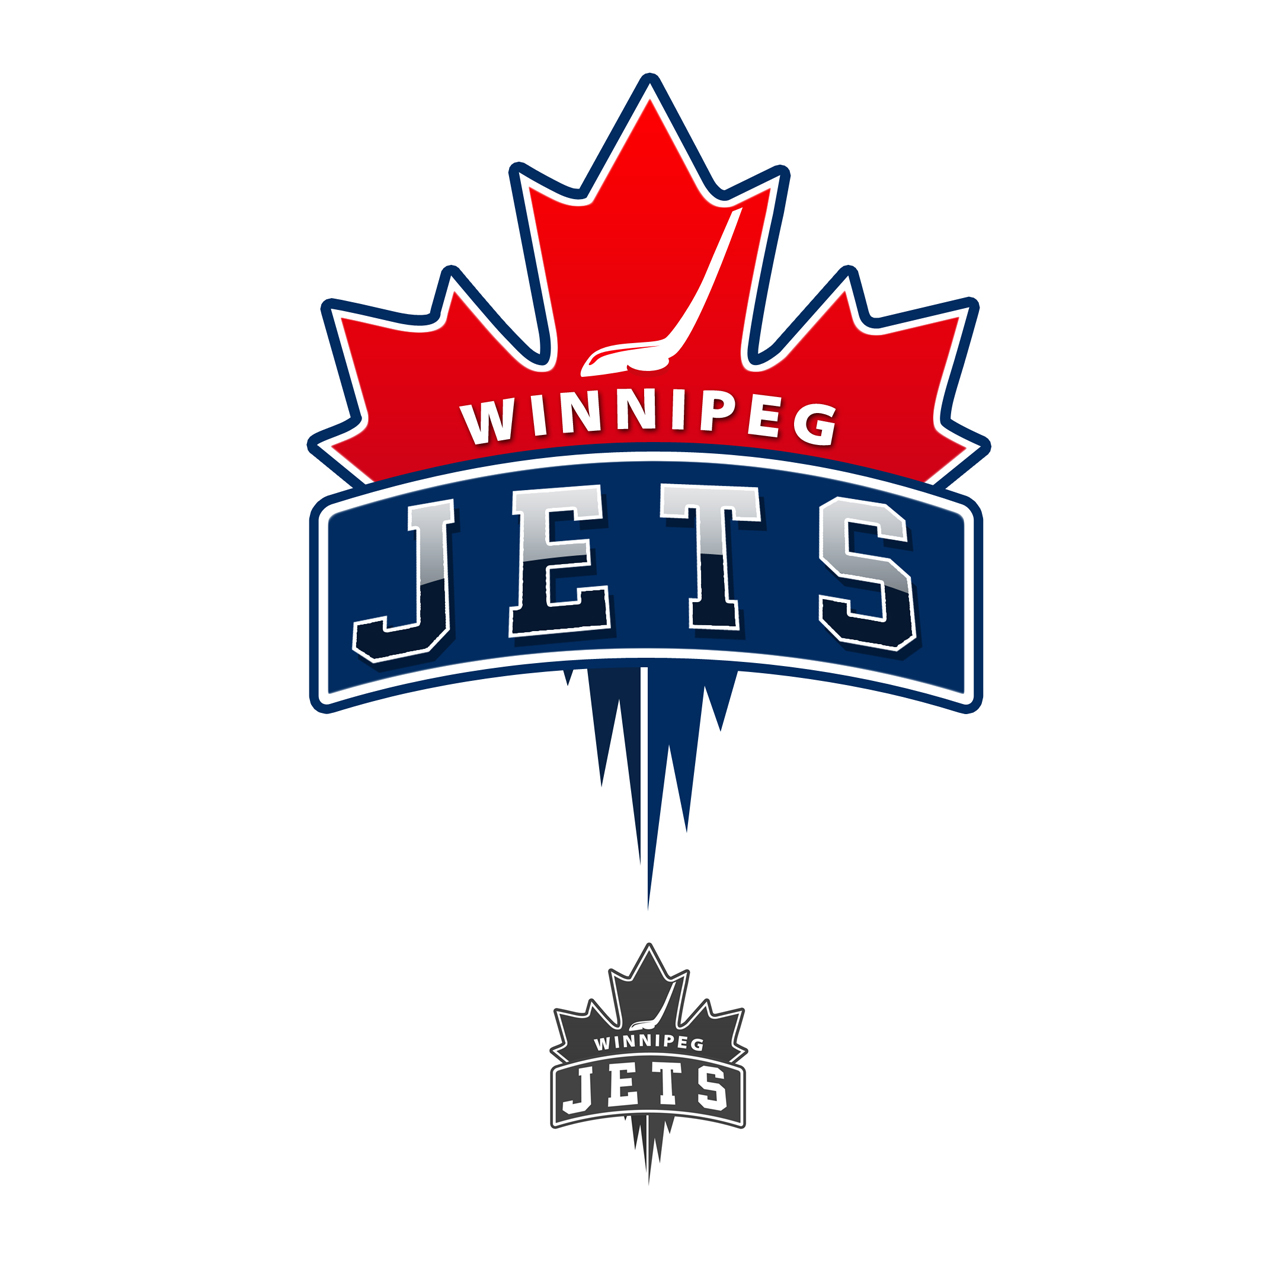 Logo Design by carell - Entry No. 80 in the Logo Design Contest Winnipeg Jets Logo Design Contest.